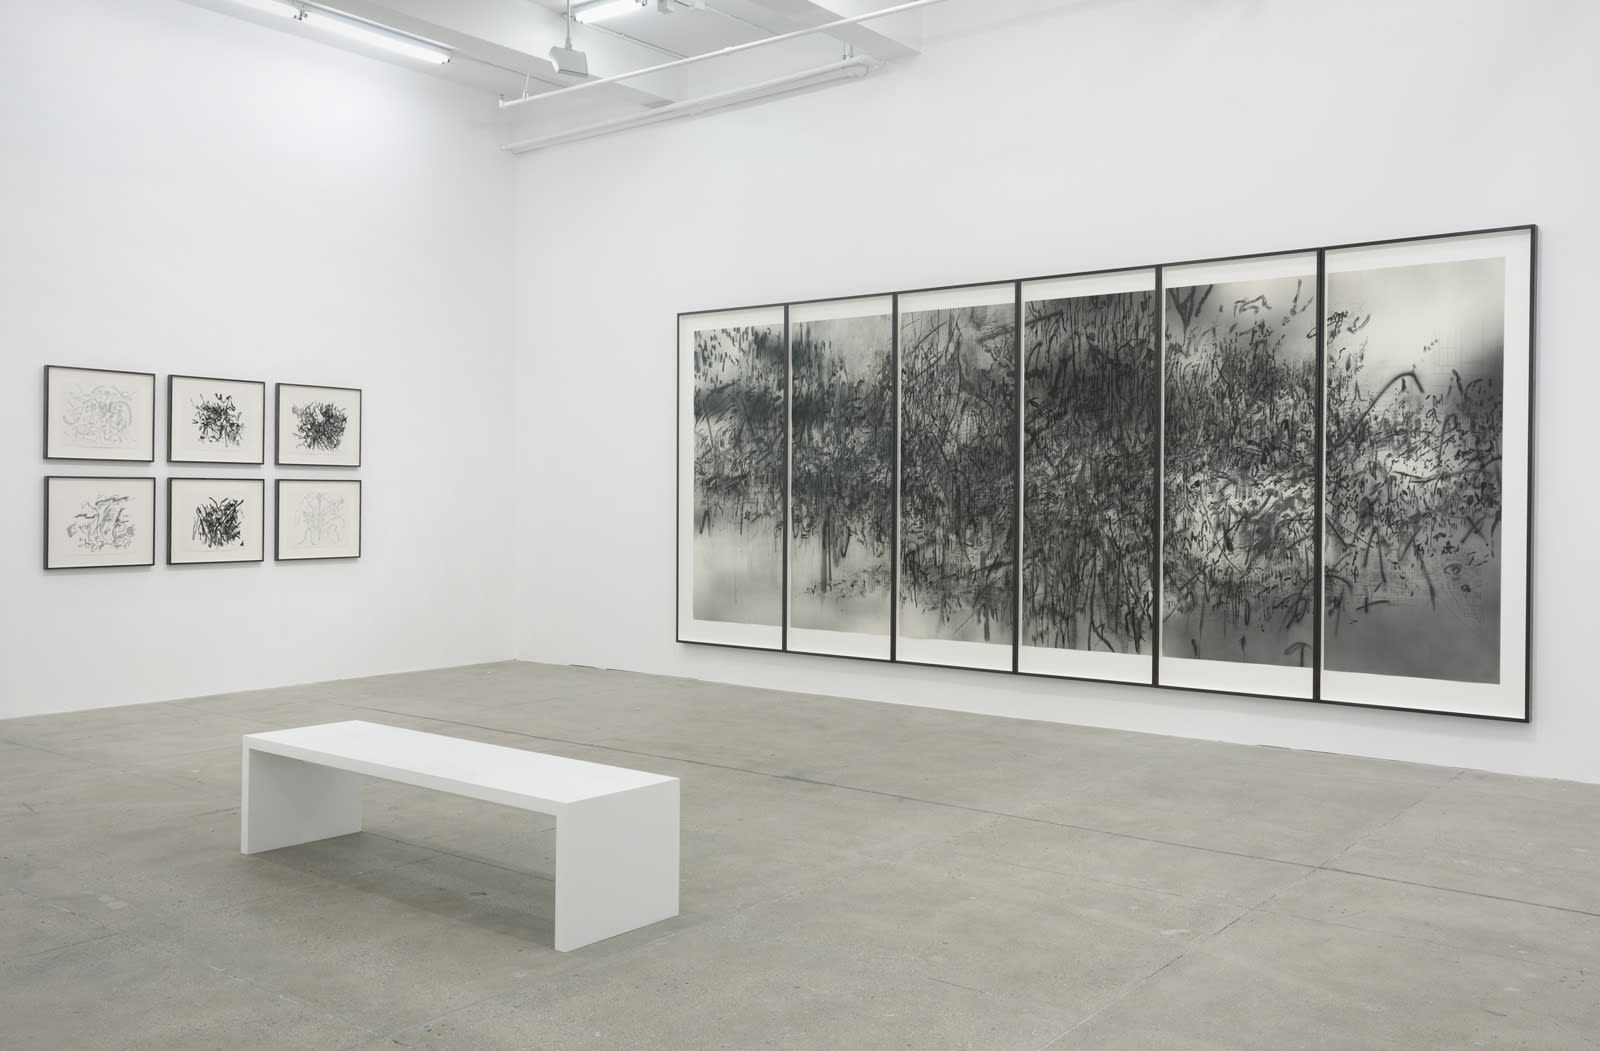 Black and white abstract drawings, small and large, hang in multiple frames in a white gallery.